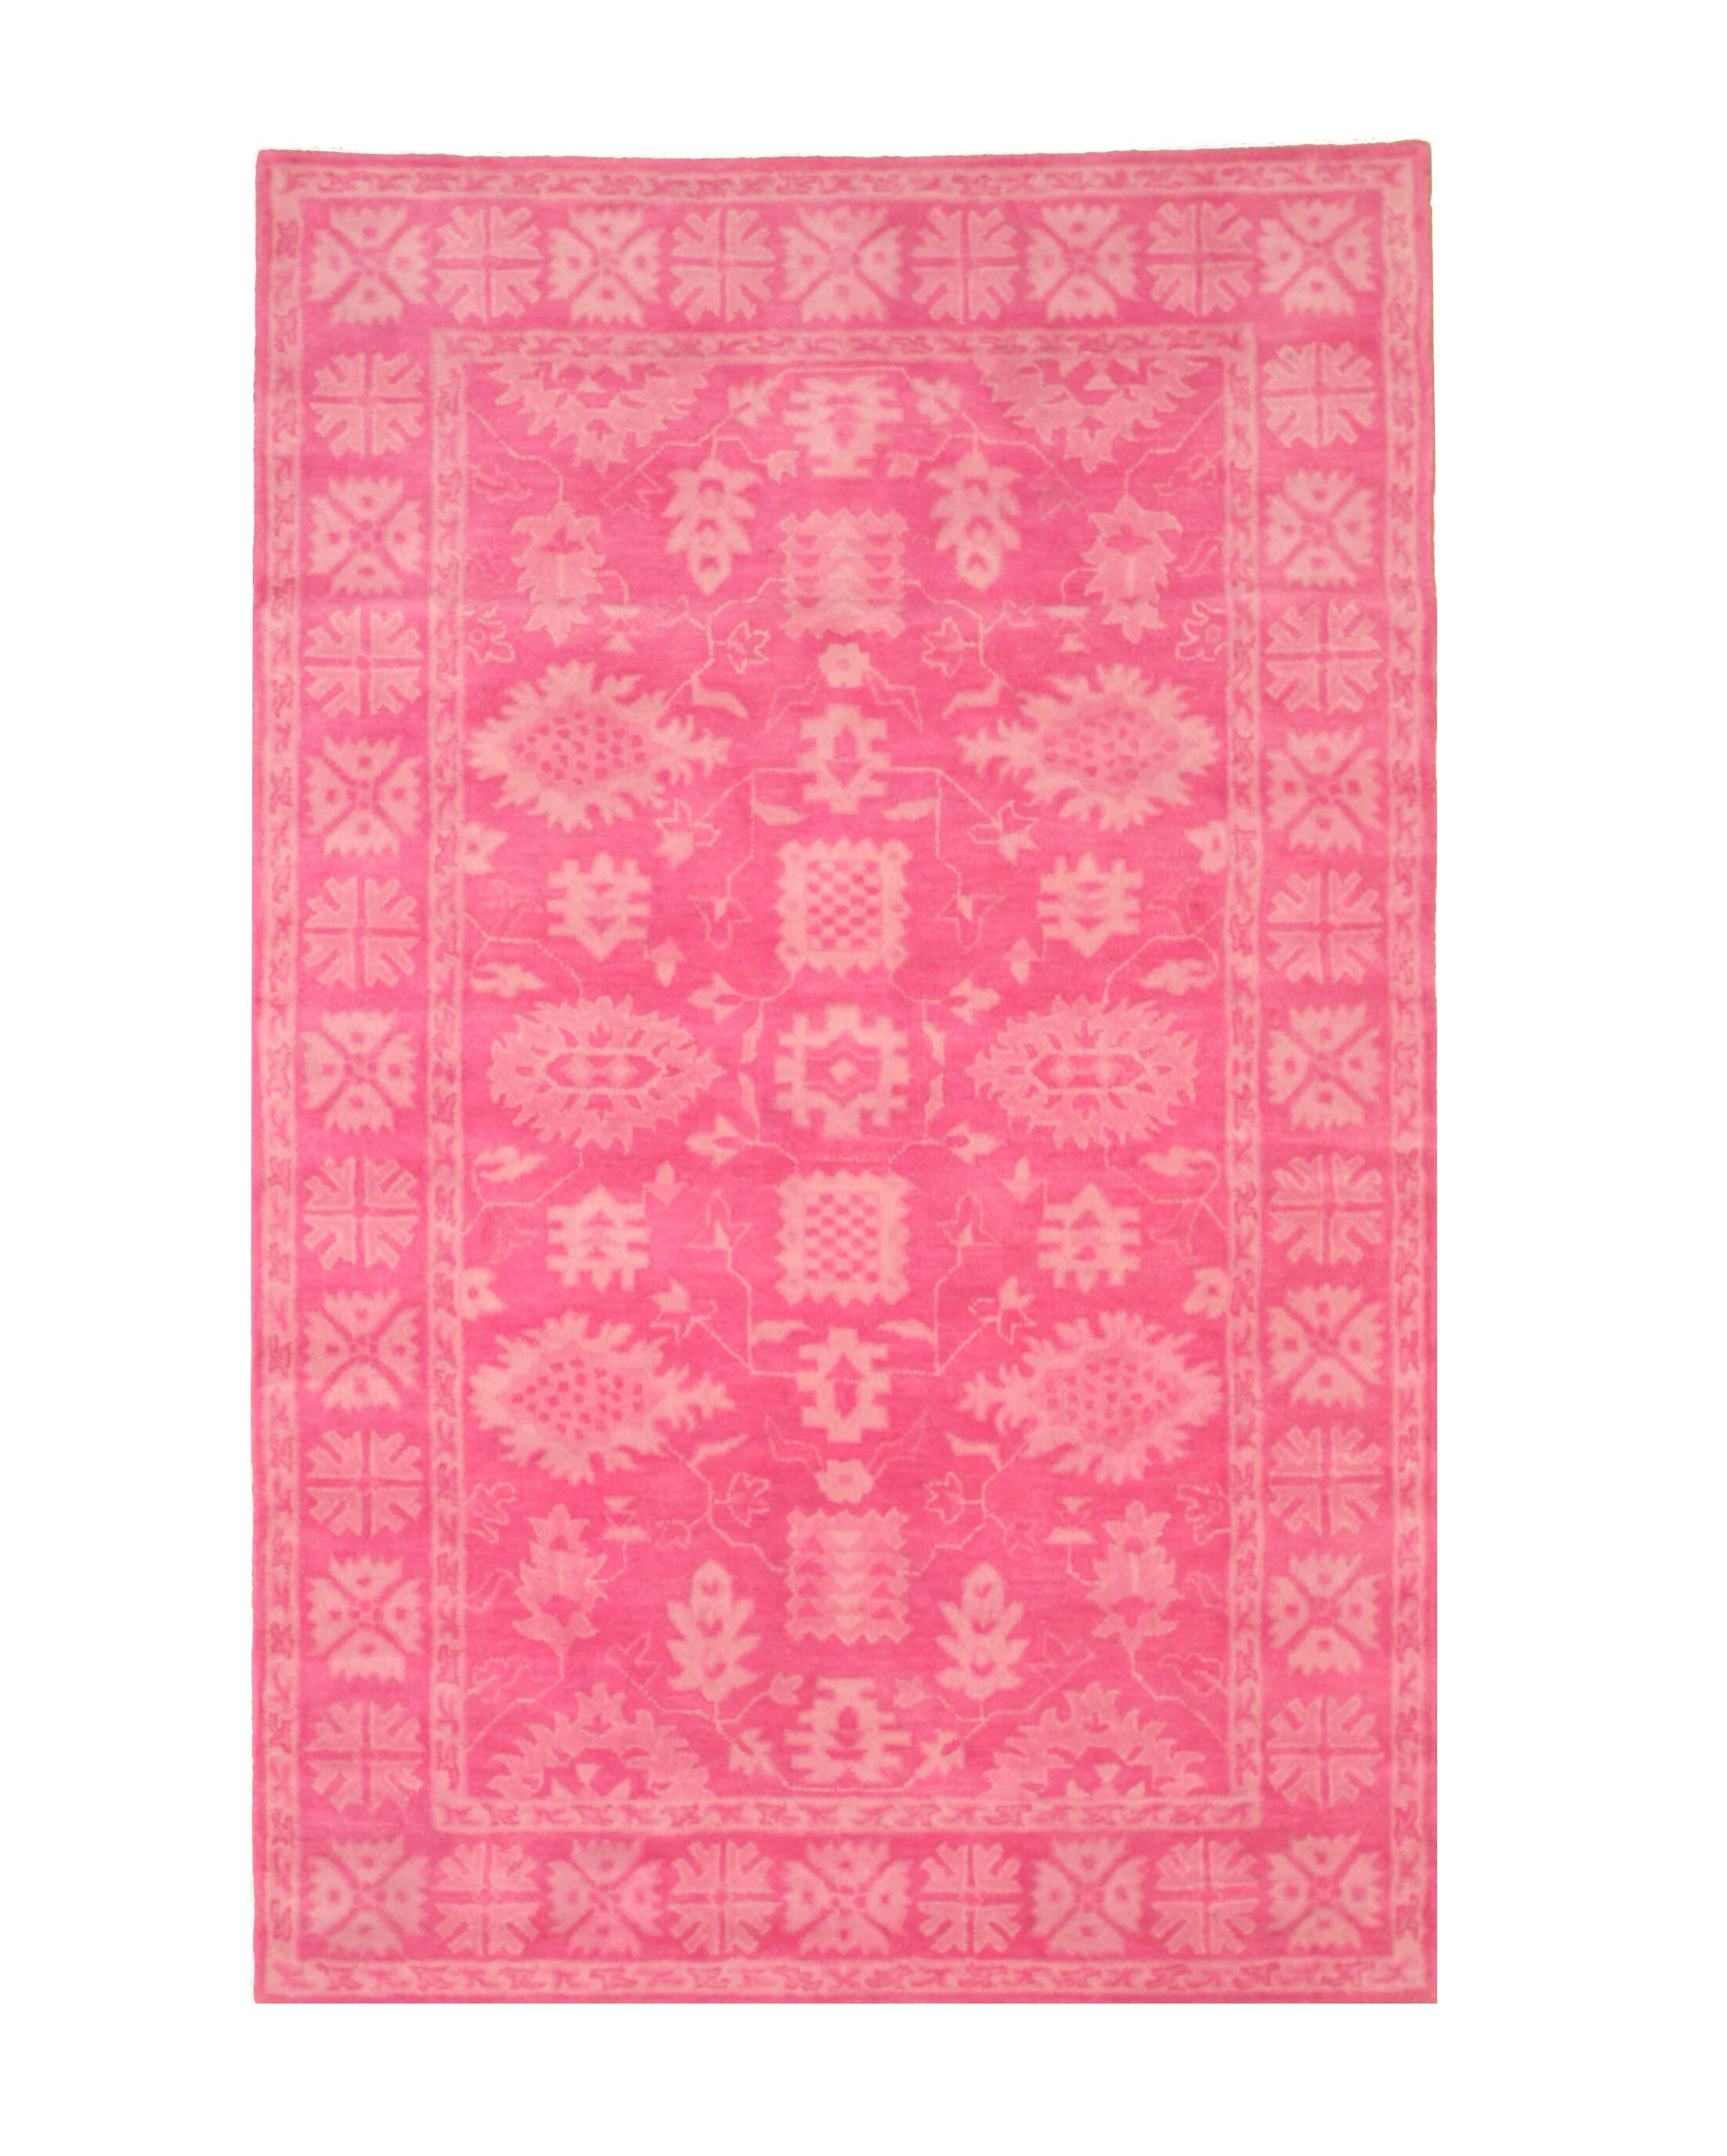 Meliton Traditional Oriental Overdyed Hand-Tufted Wool Pink Area Rug Rug Size: Rectangle 7'9